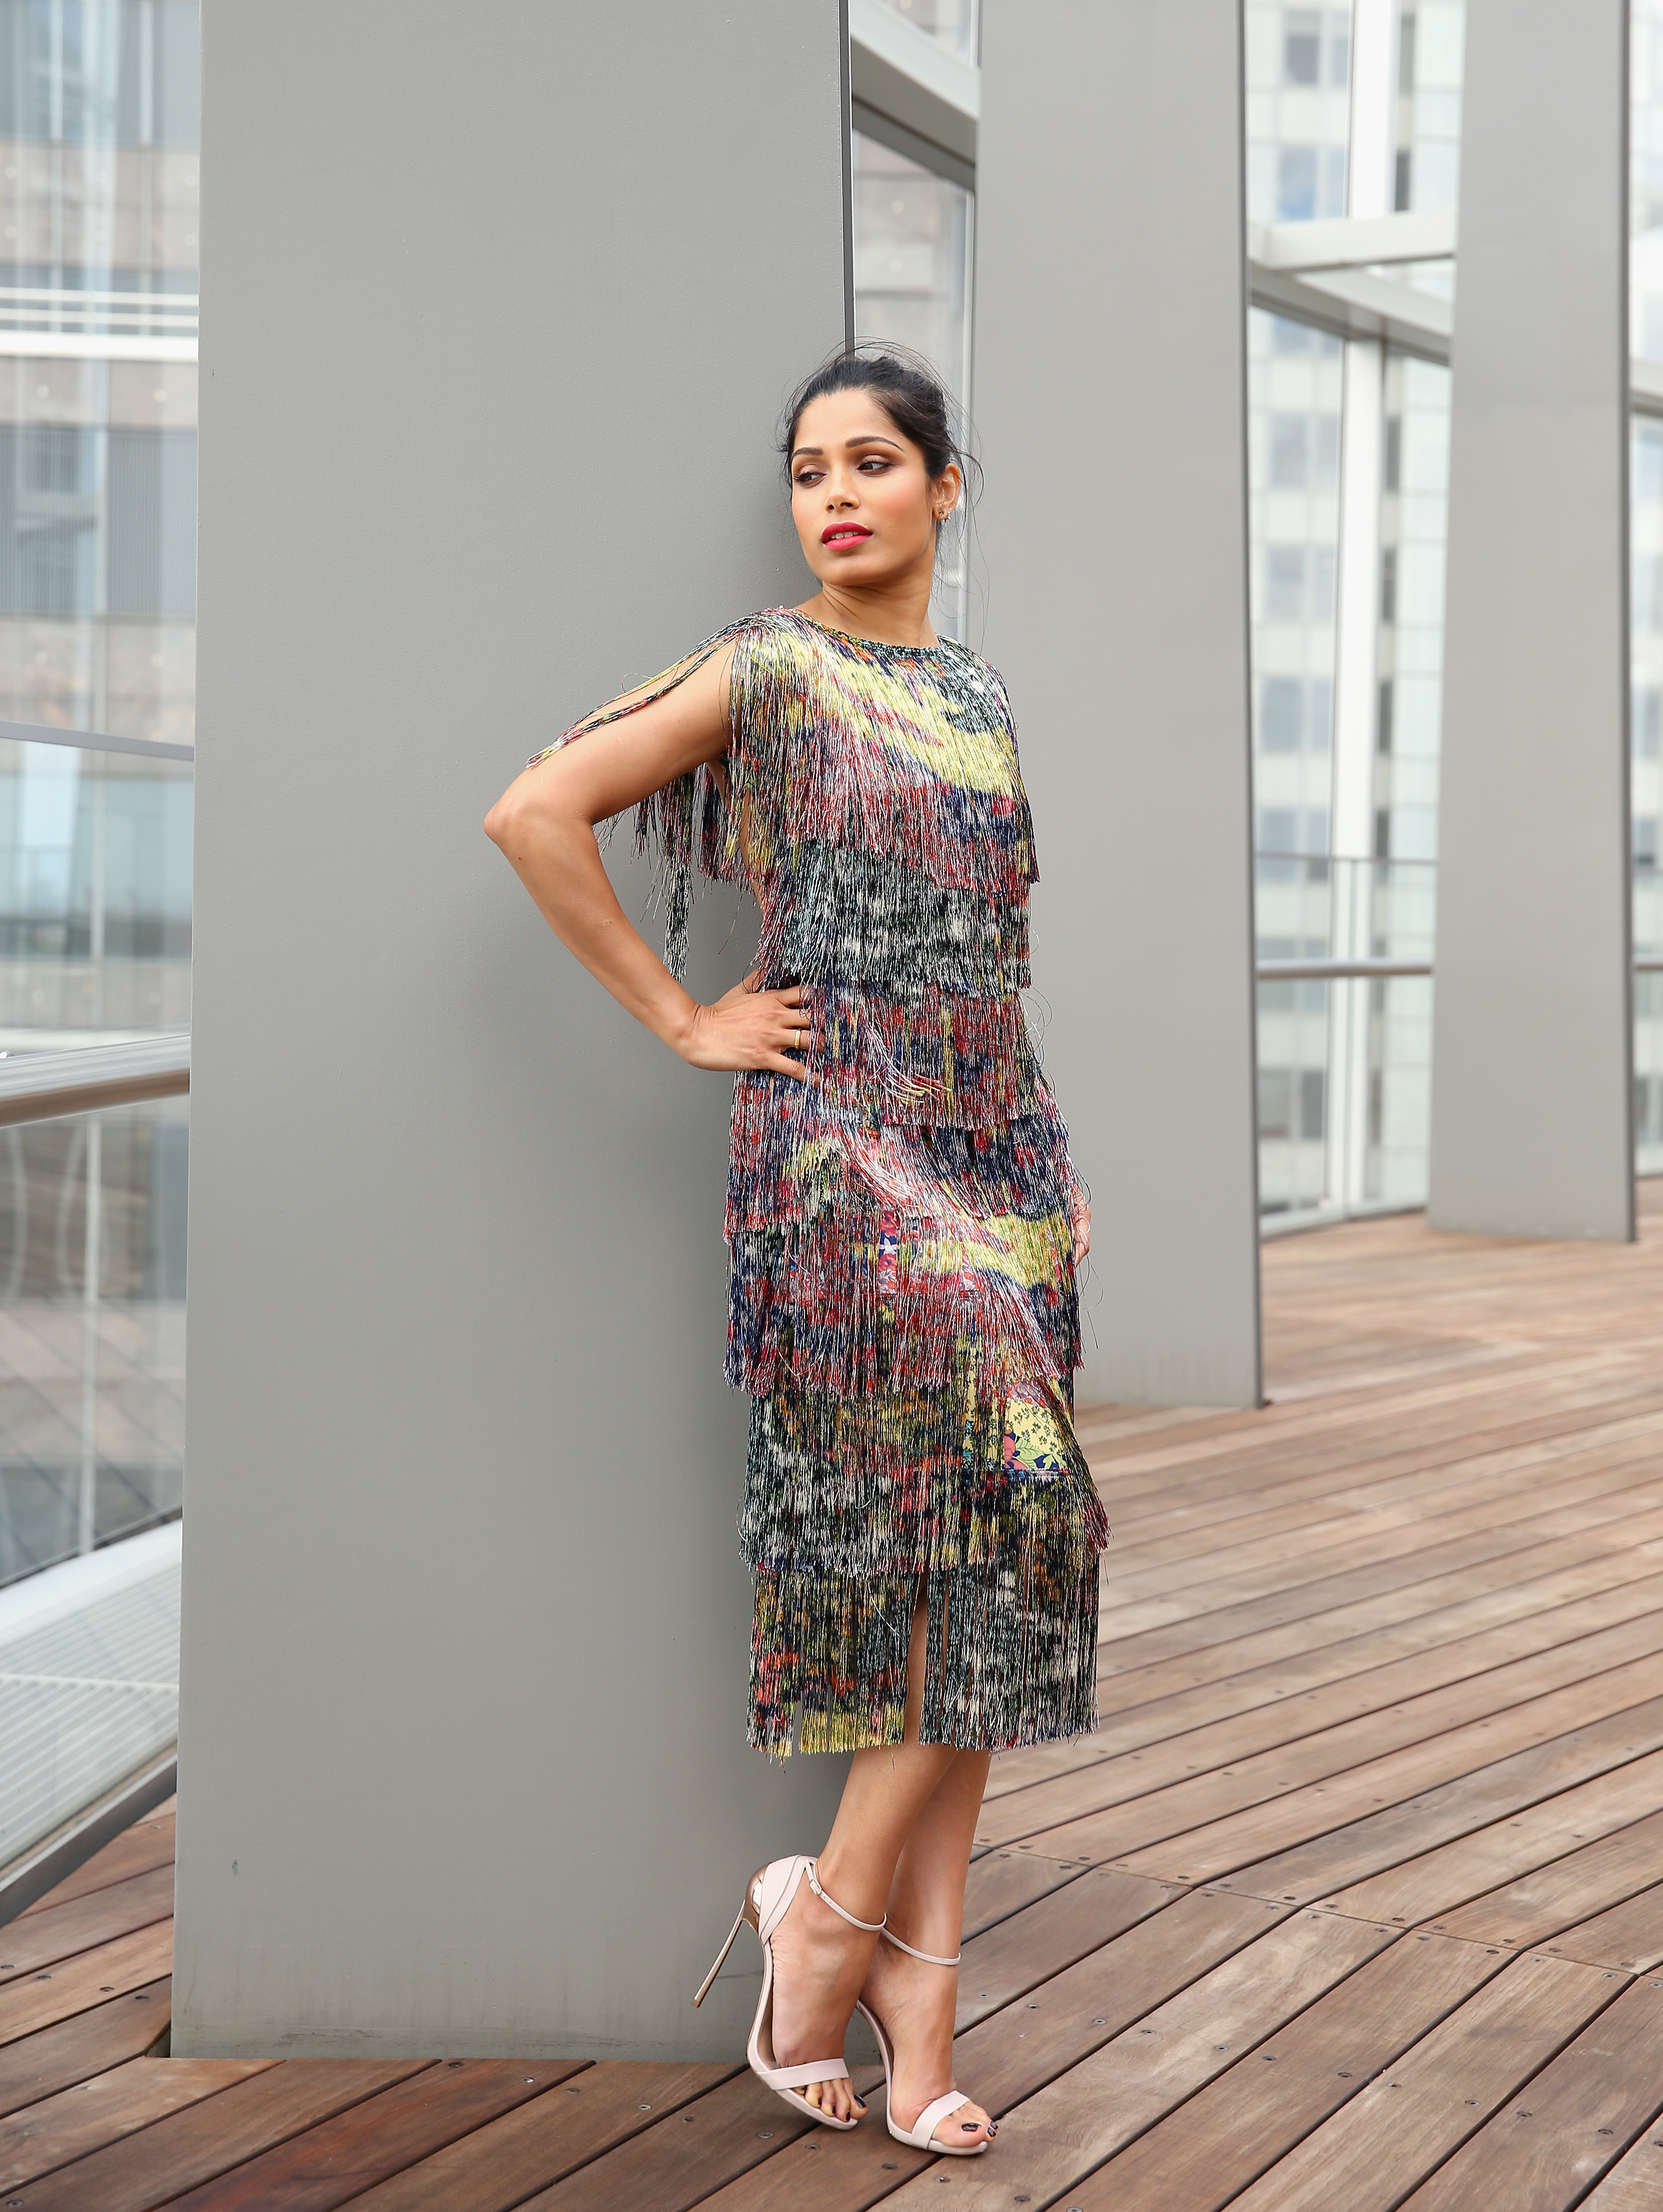 Freida Pinto poses during the Veuve Clicquot New Generation Award in Sydney on March 6, 2018.